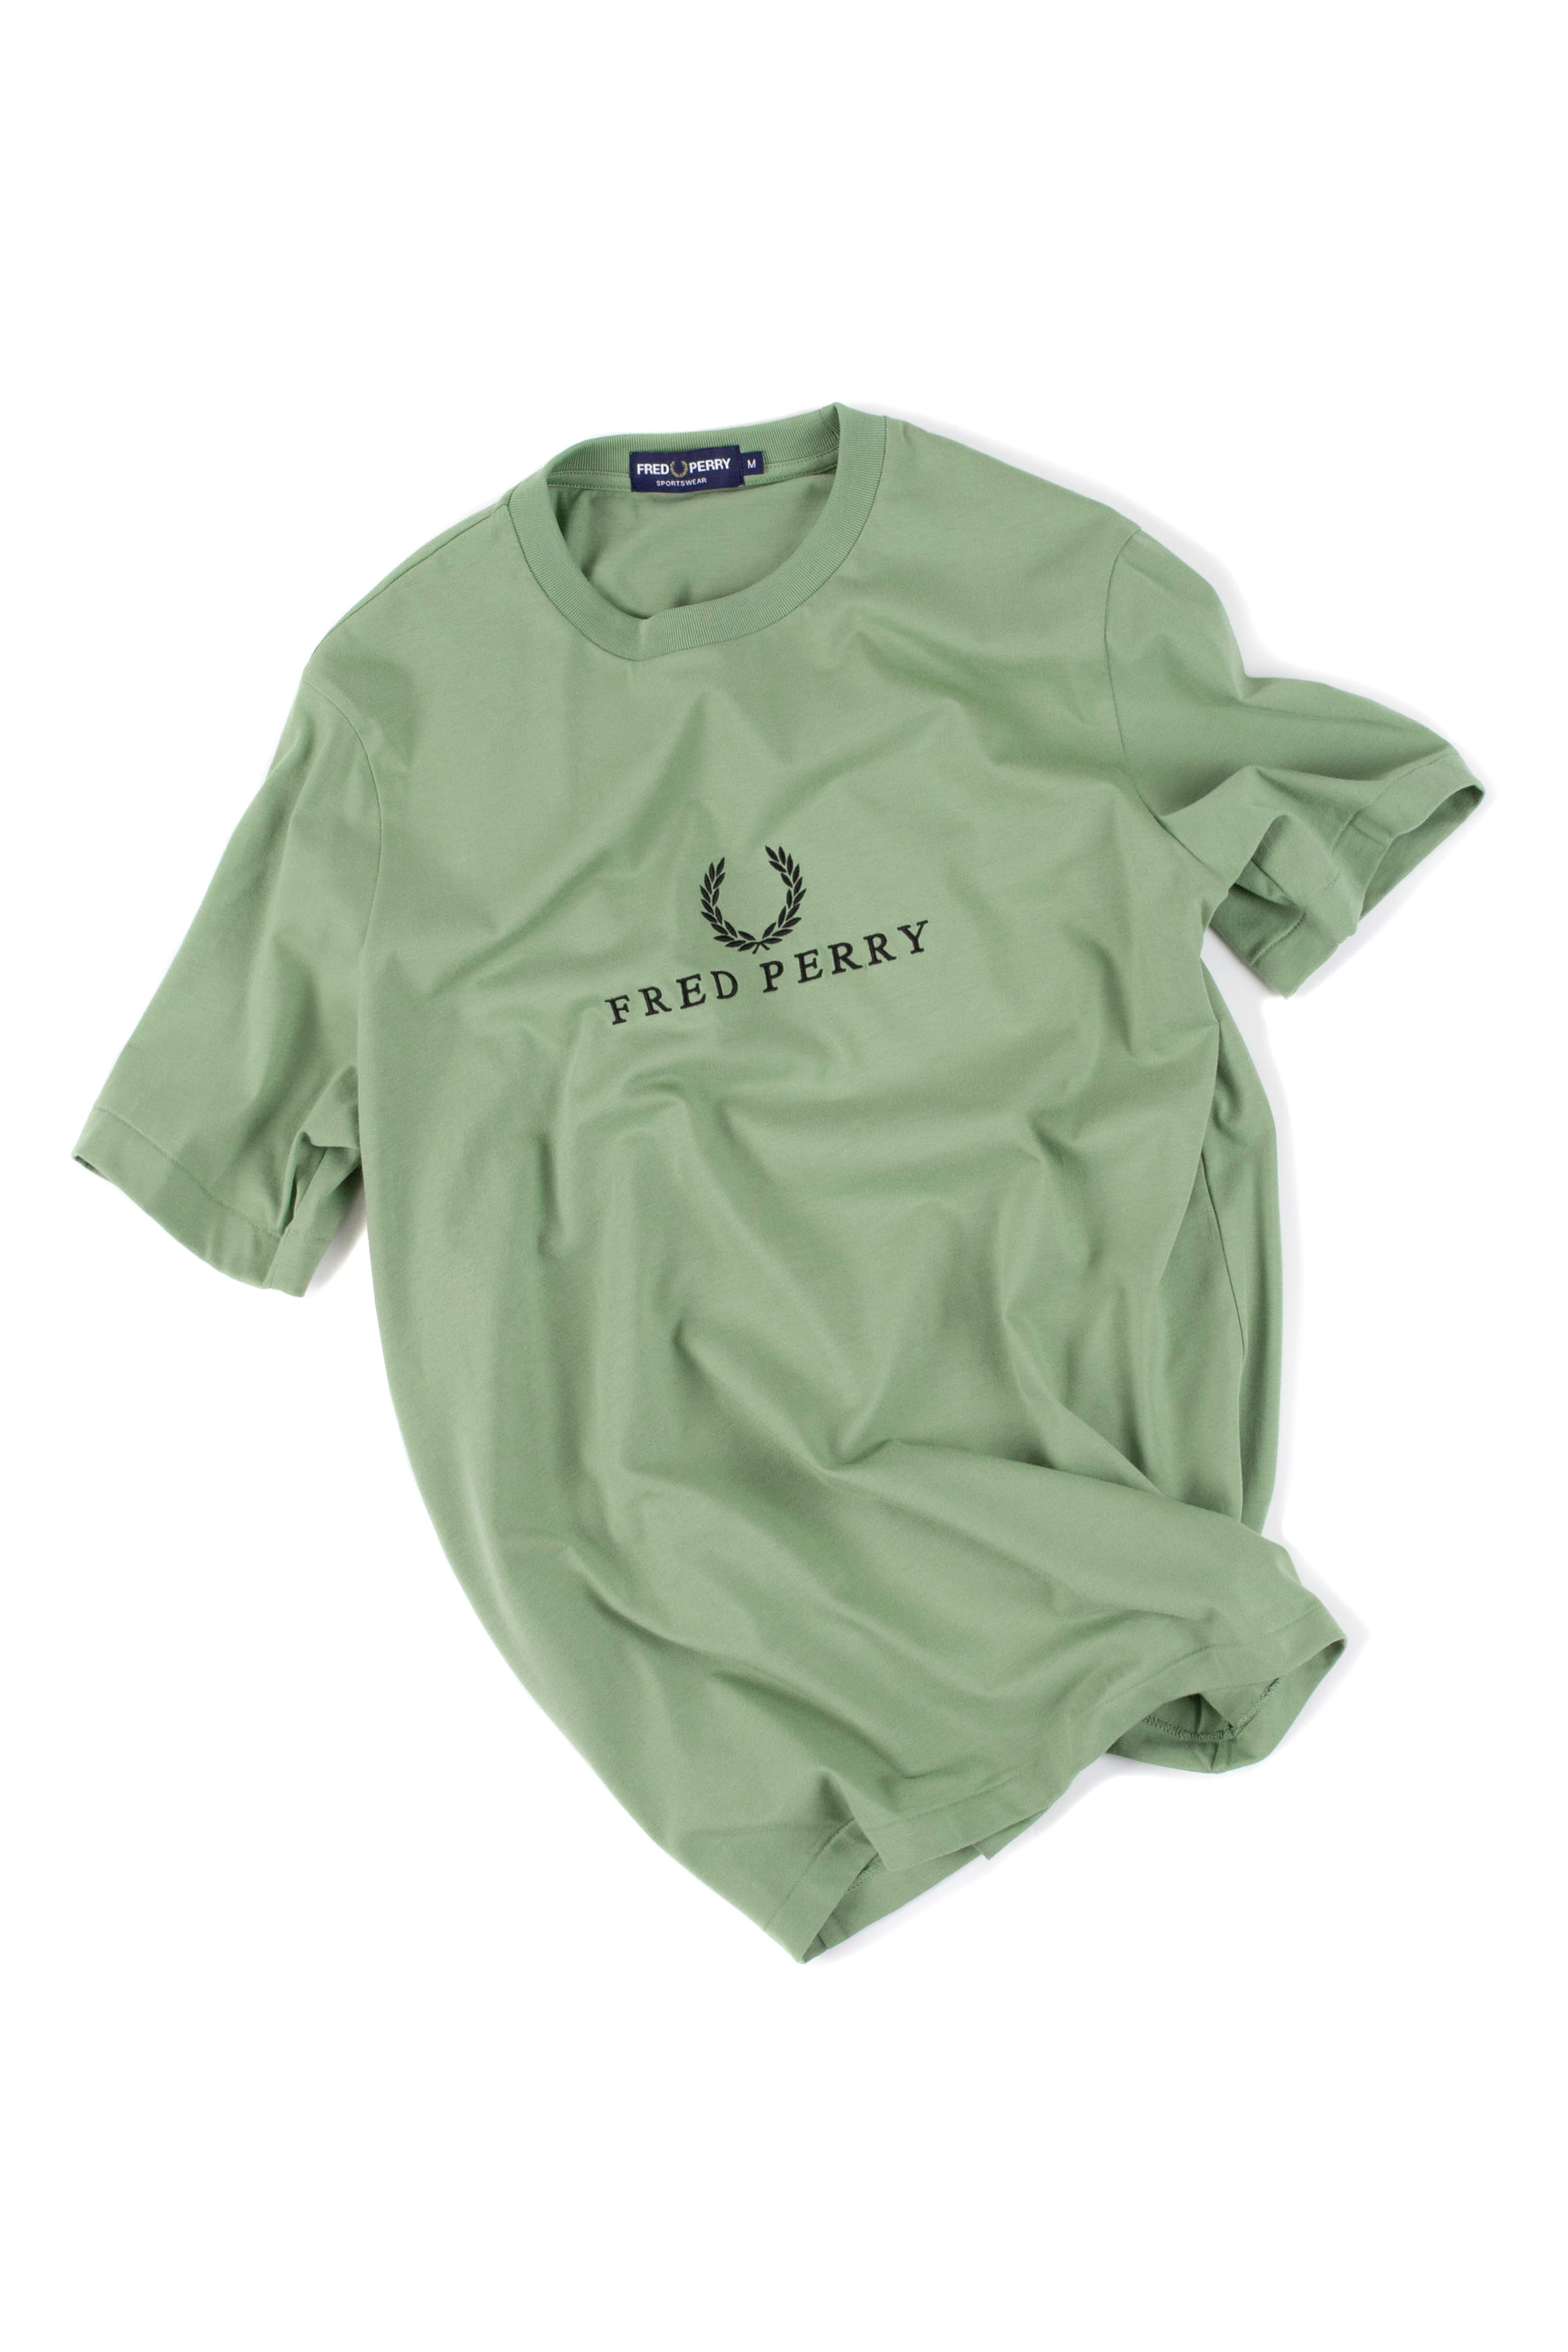 FRED PERRY : Embroidered T-Shirt (Green)